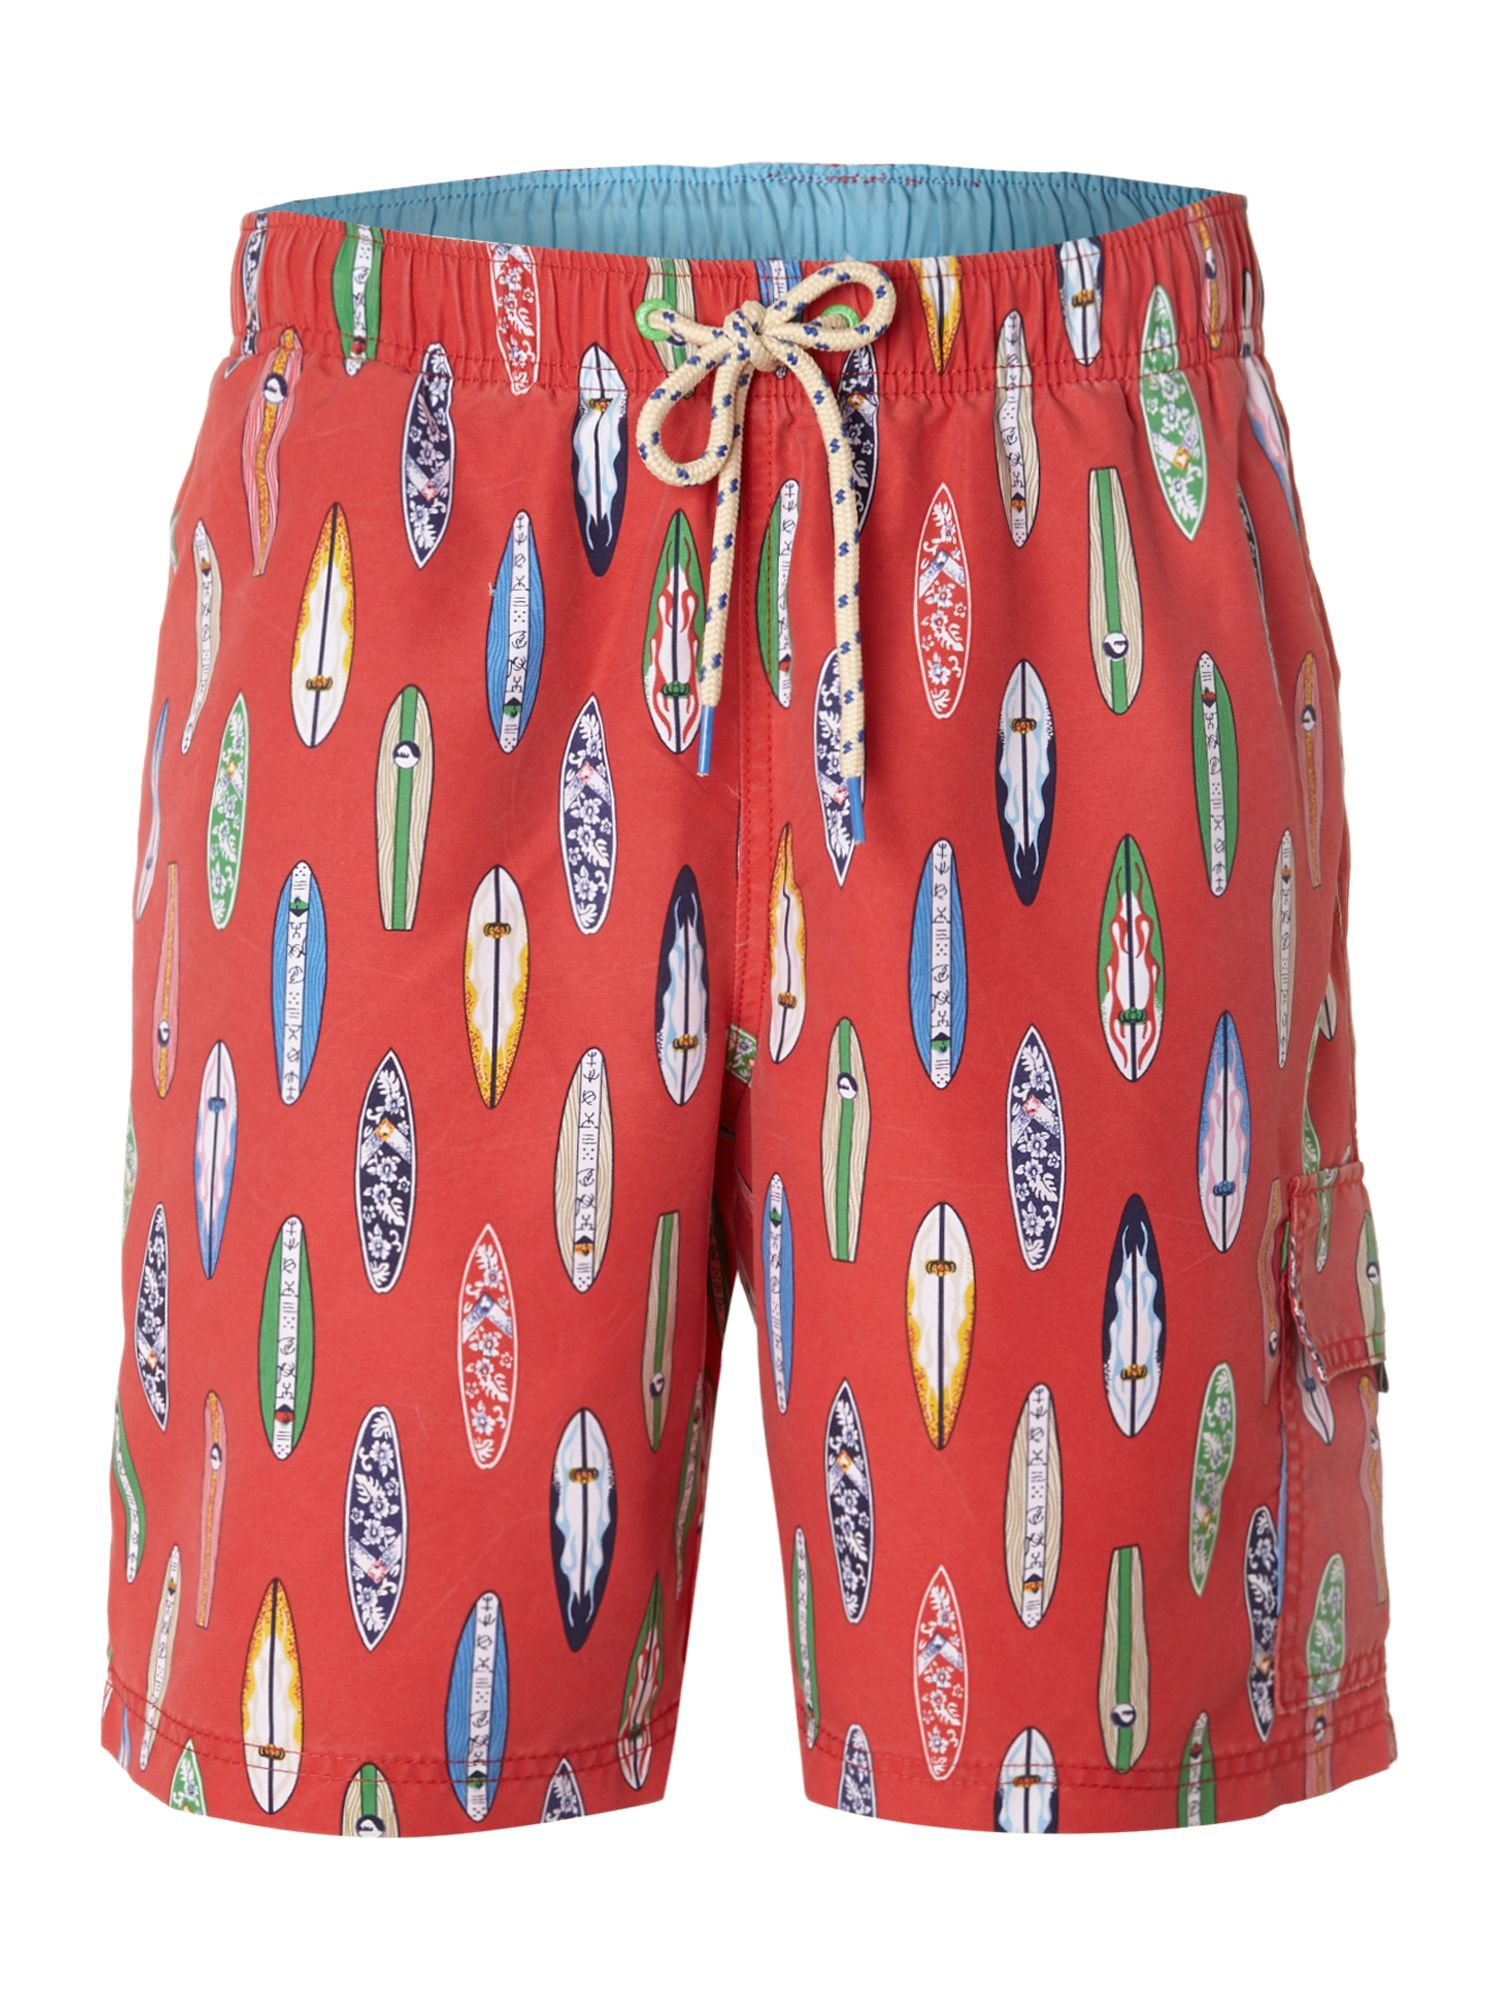 Surf board short